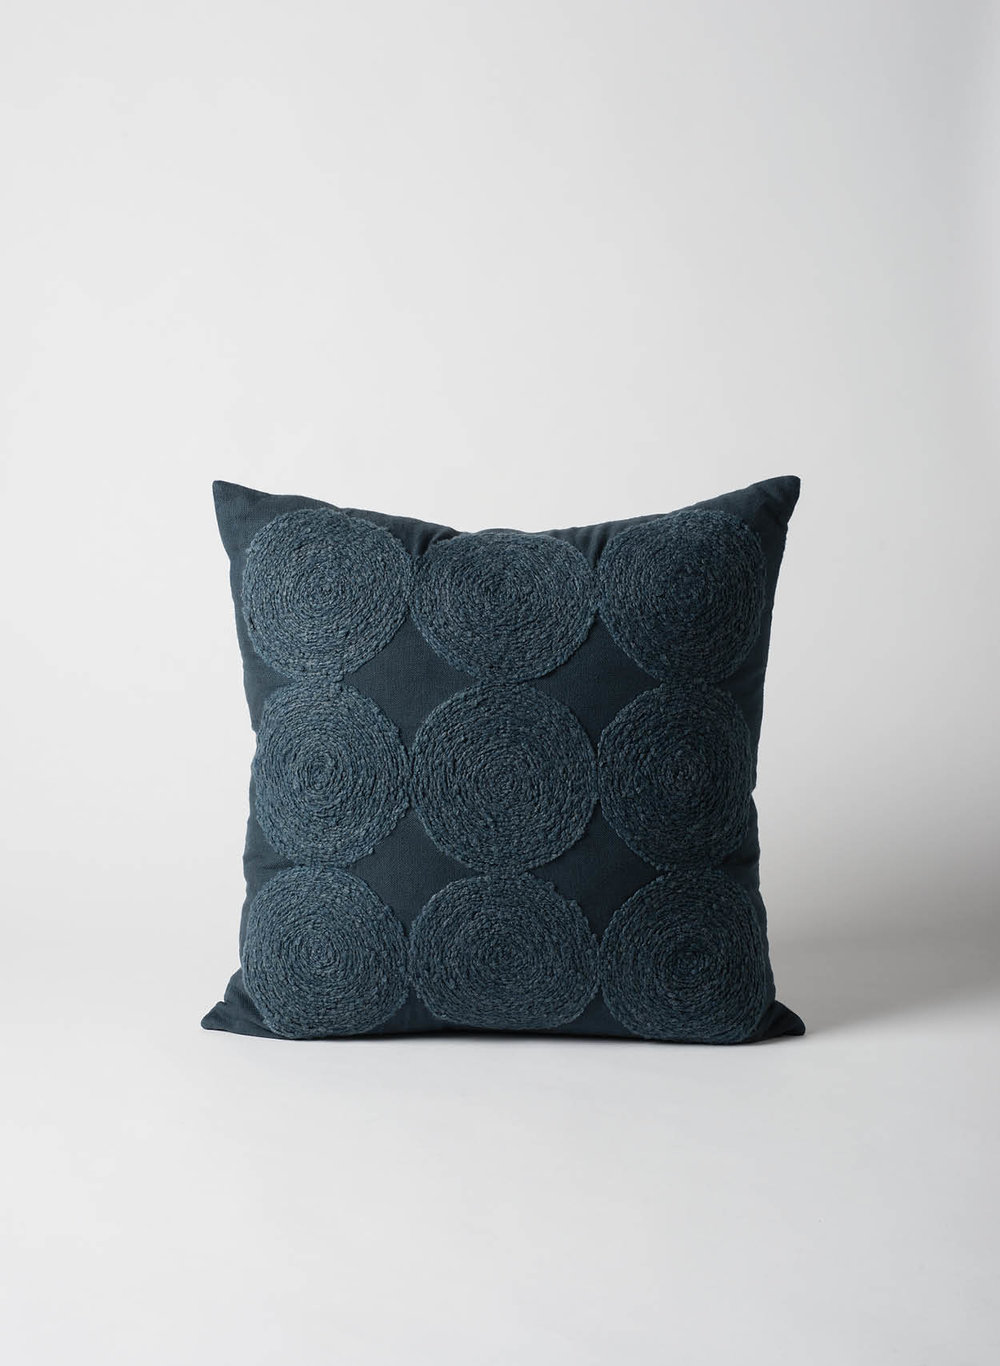 Luna Embroidered Cushion Cover $64.90